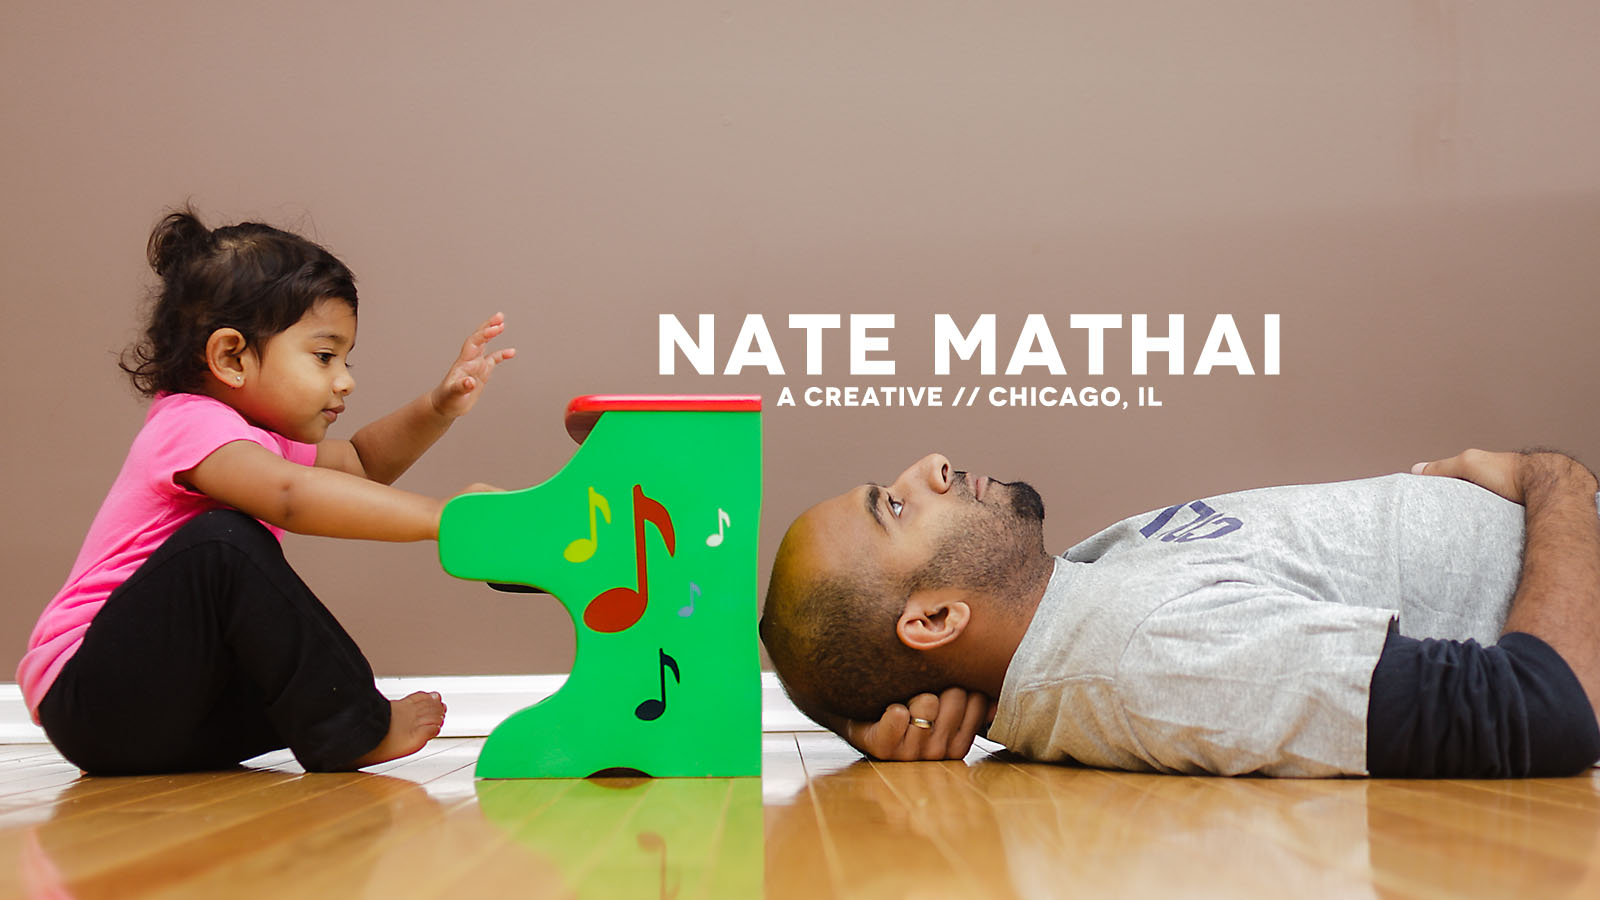 top image for More Than A Dream by chicago wedding photographer nate mathai